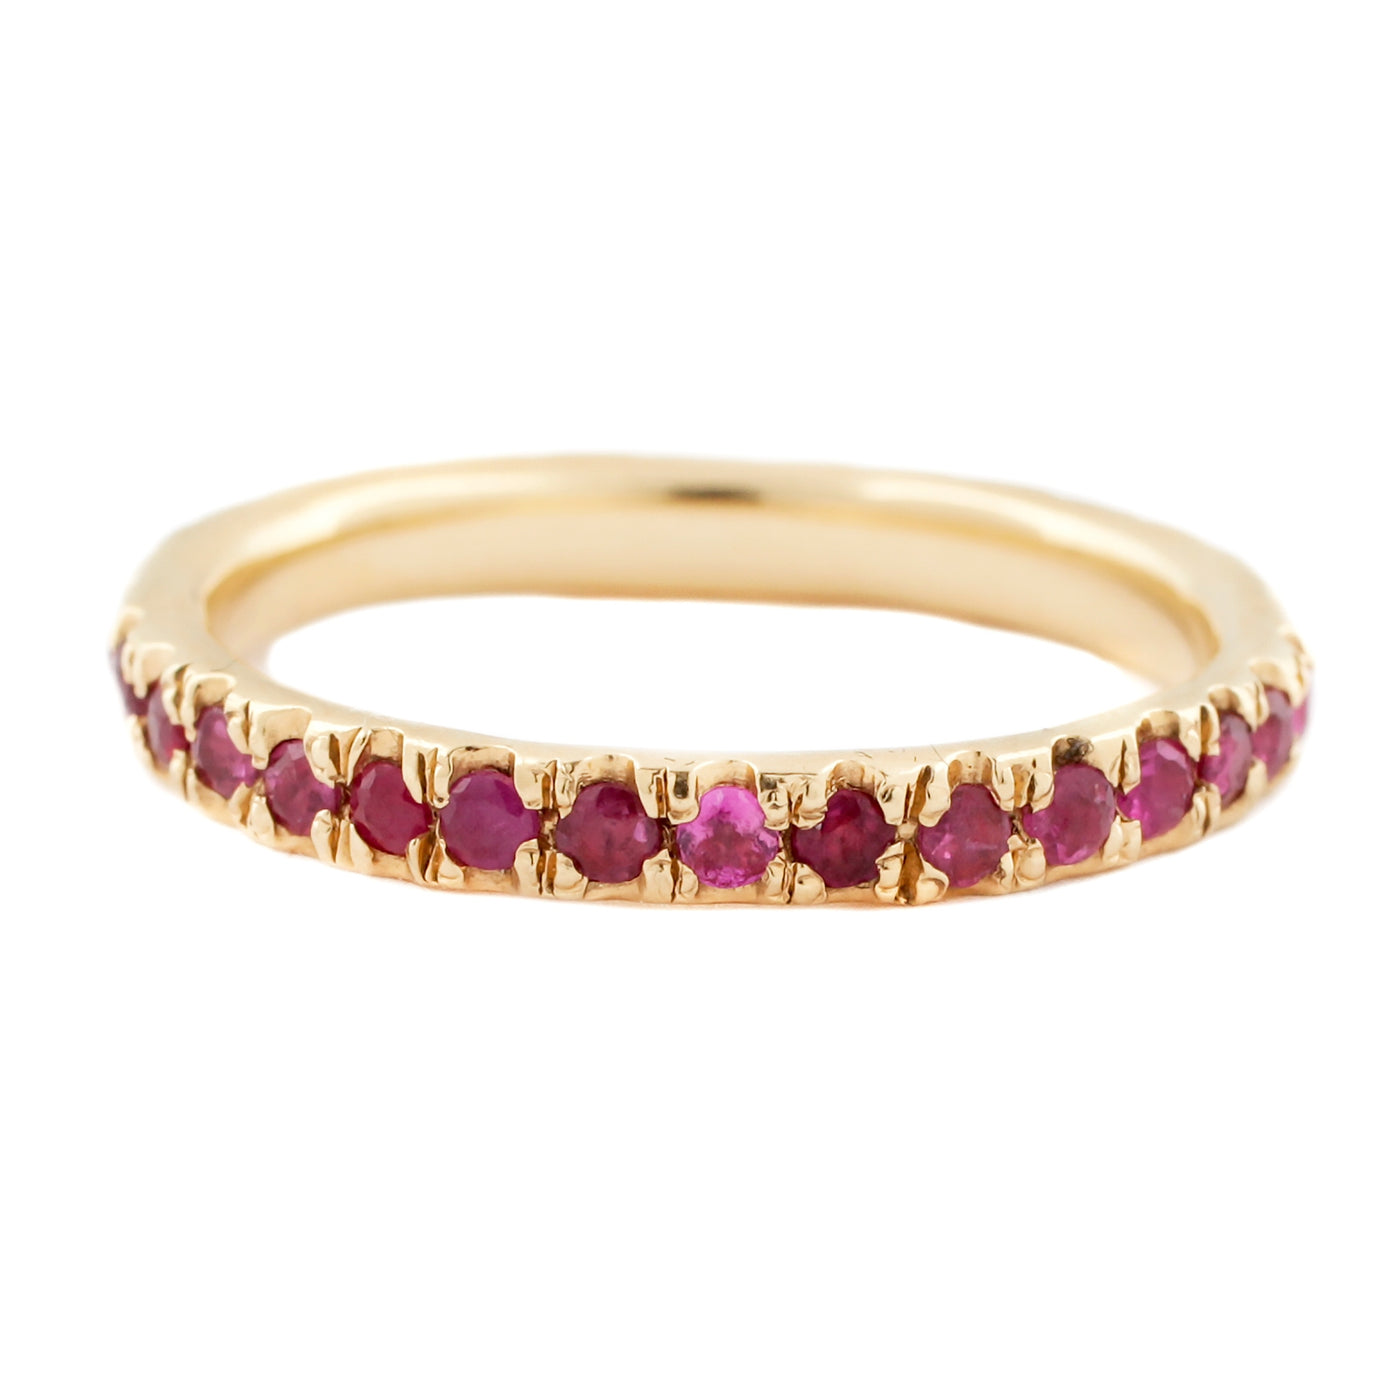 Lauren Wolf Jewelry Ruby Eternity Band in Yellow Gold